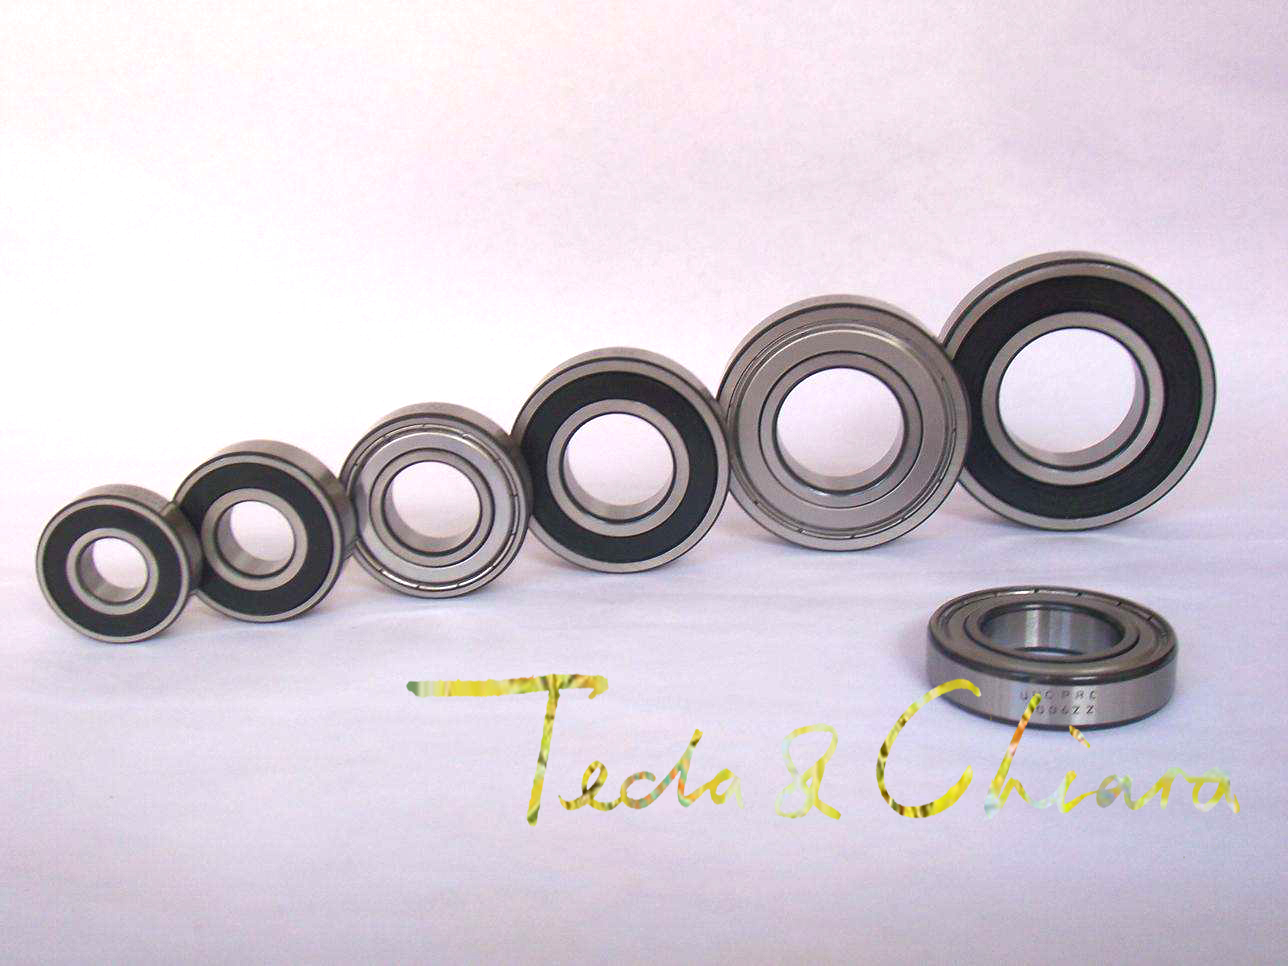 MR148 MR148ZZ MR148RS MR148-2Z MR148Z MR148-2RS ZZ RS RZ 2RZ L-1480ZZ Deep Groove Ball Bearings 8 x 14 x 4mm High Quality free shipping 25x47x12mm deep groove ball bearings 6005 zz 2z 6005zz bearing 6005zz 6005 2rs